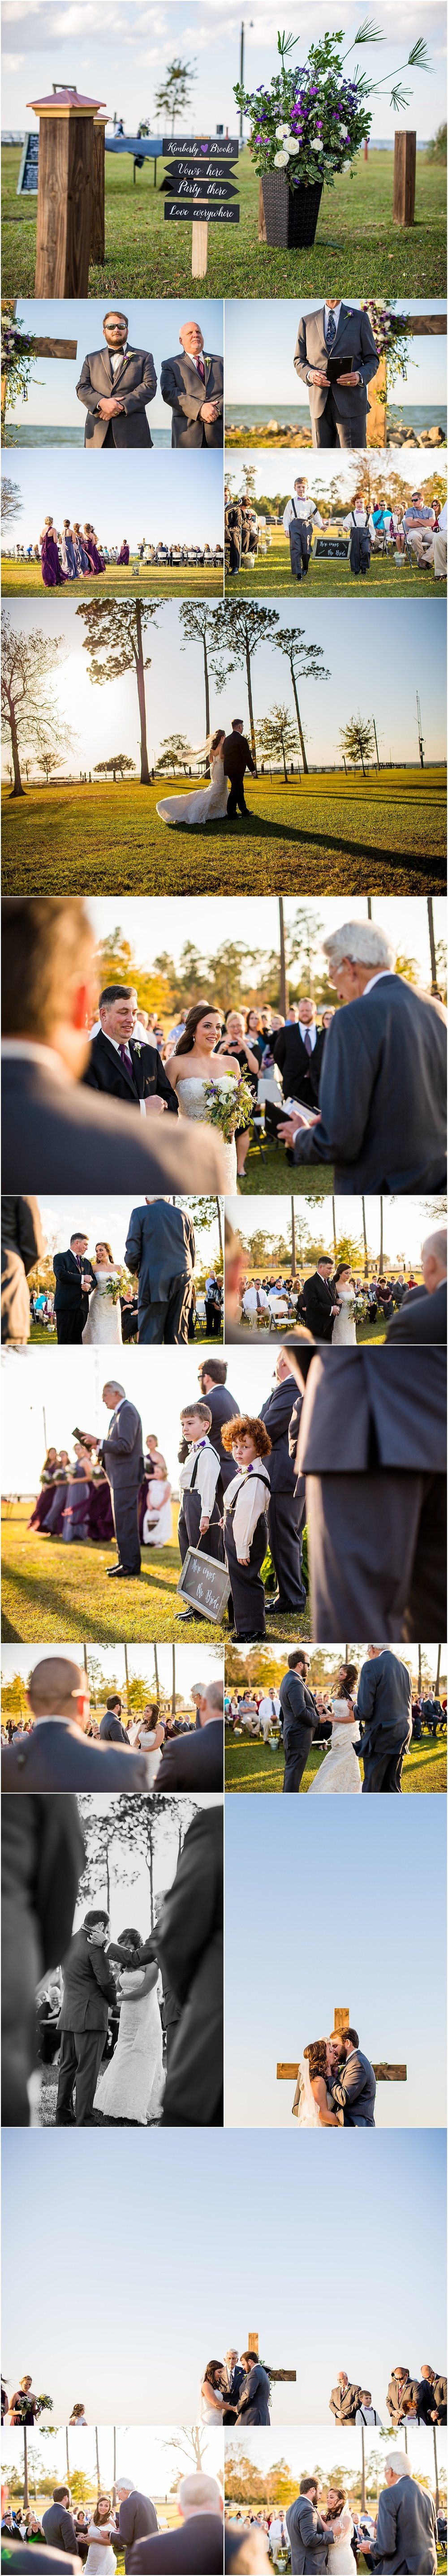 Lakeside_Golden_Hour_Wedding_Charleston_South_Carolina